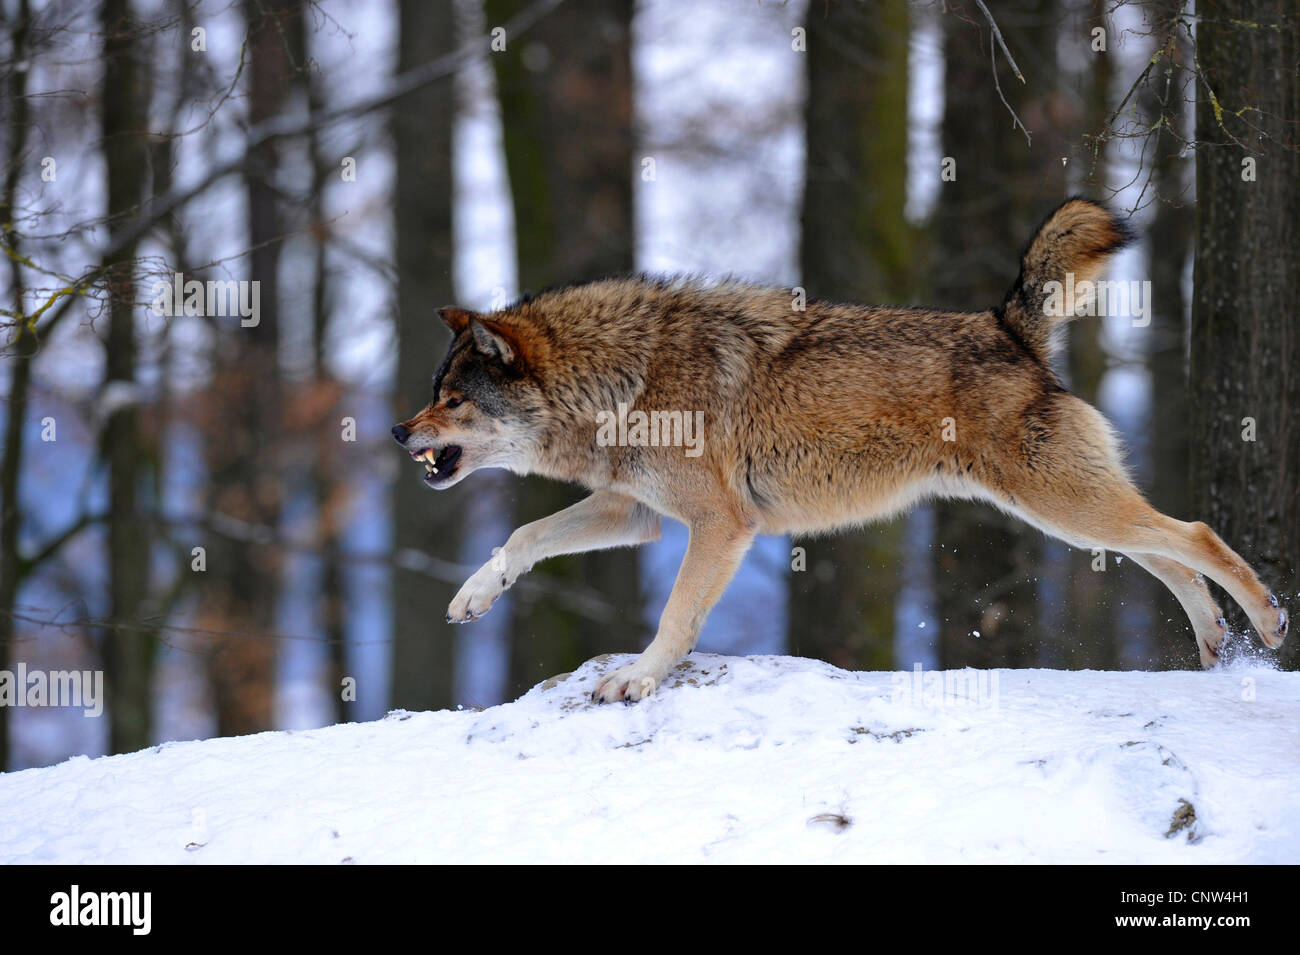 timber wolf (Canis lupus lycaon), snarling and threatening in the snow - Stock Image